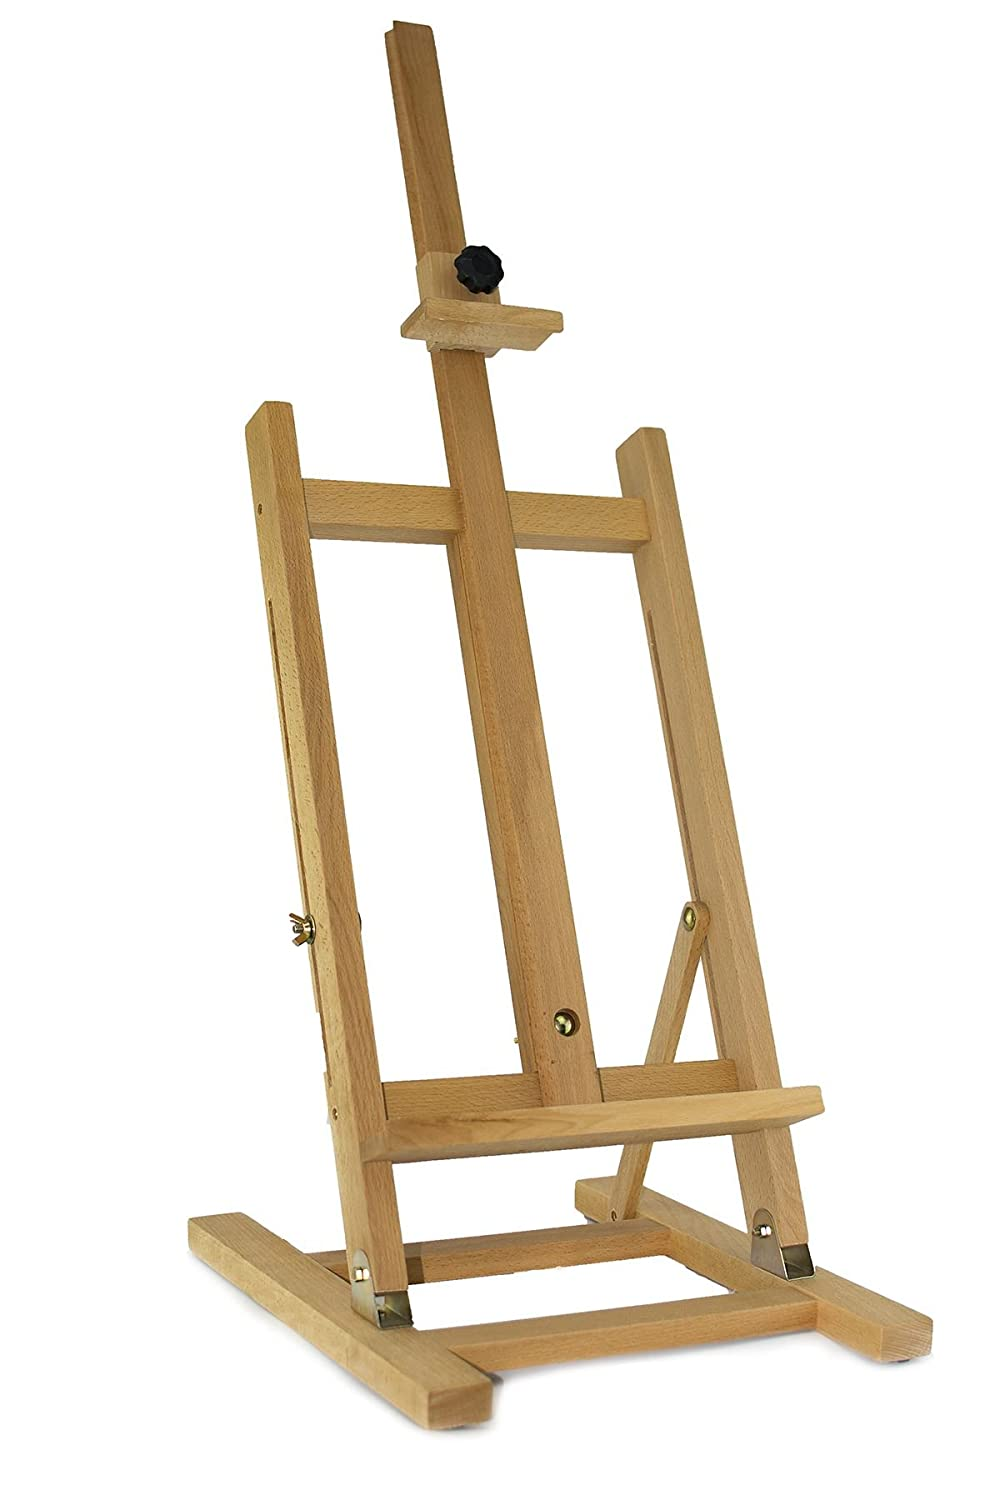 Amazon com: Quantum Art Beech Wood Table Easel 1240mm